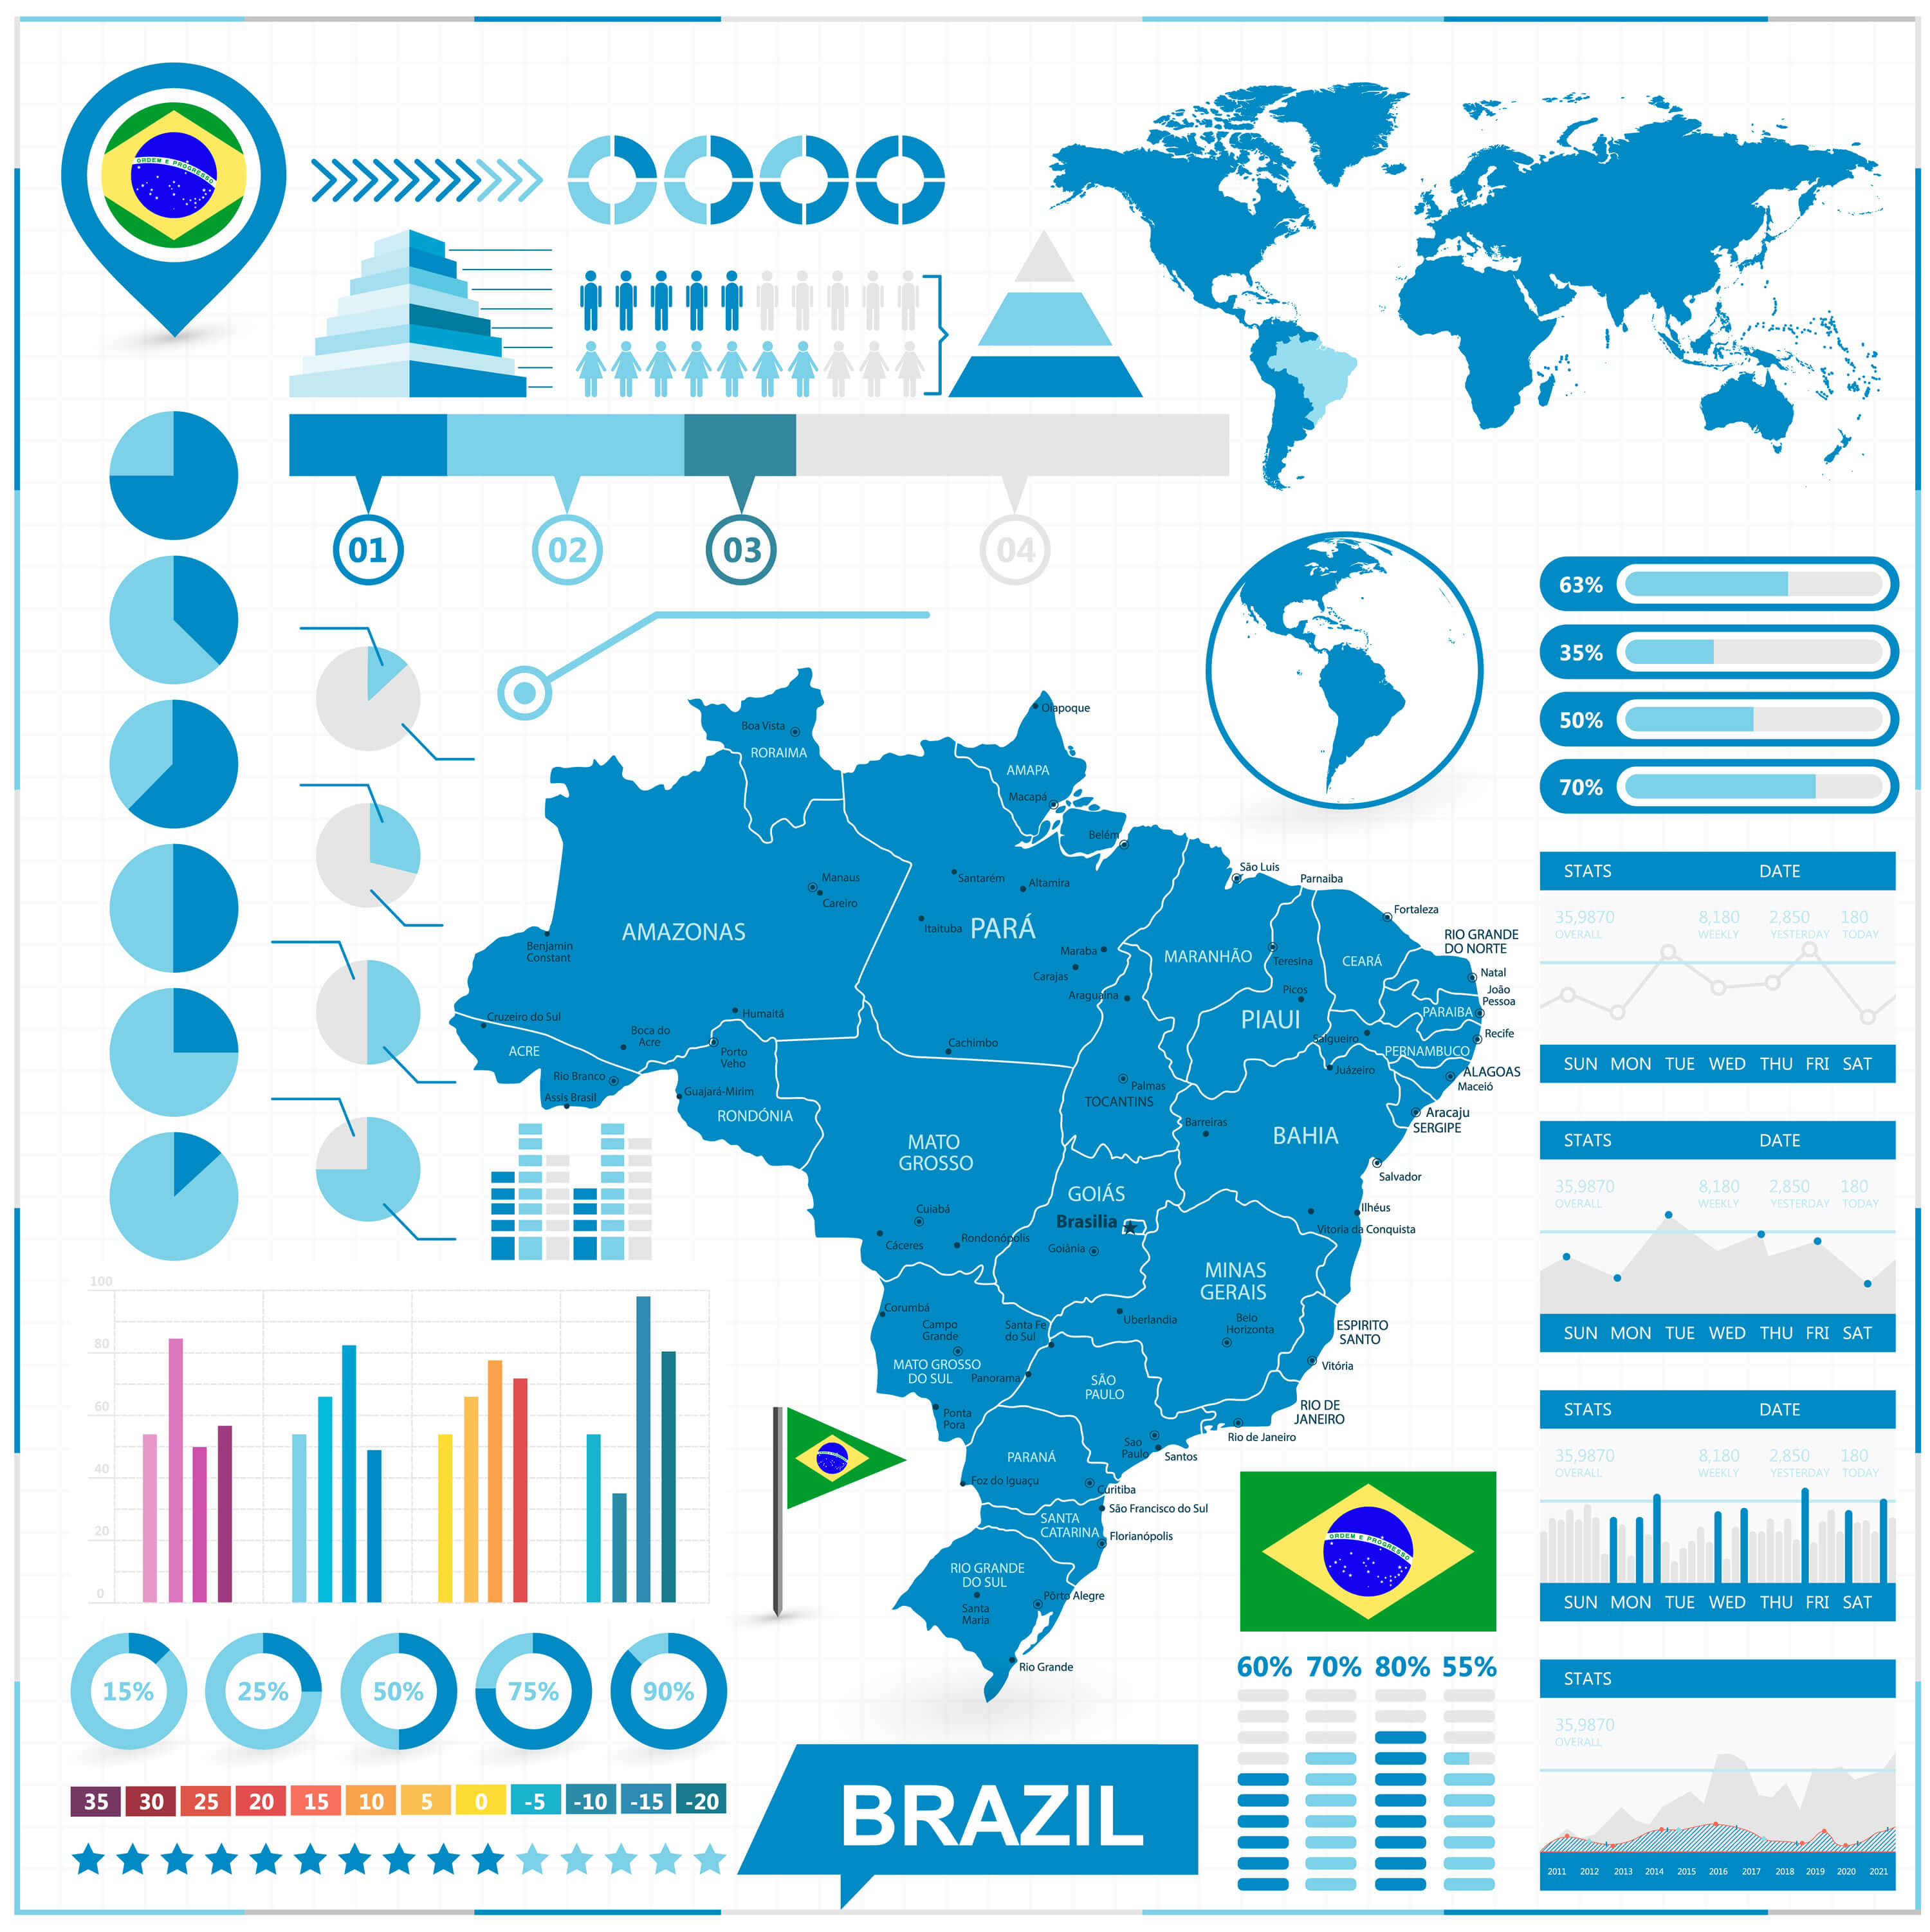 Brazil Infographic Map